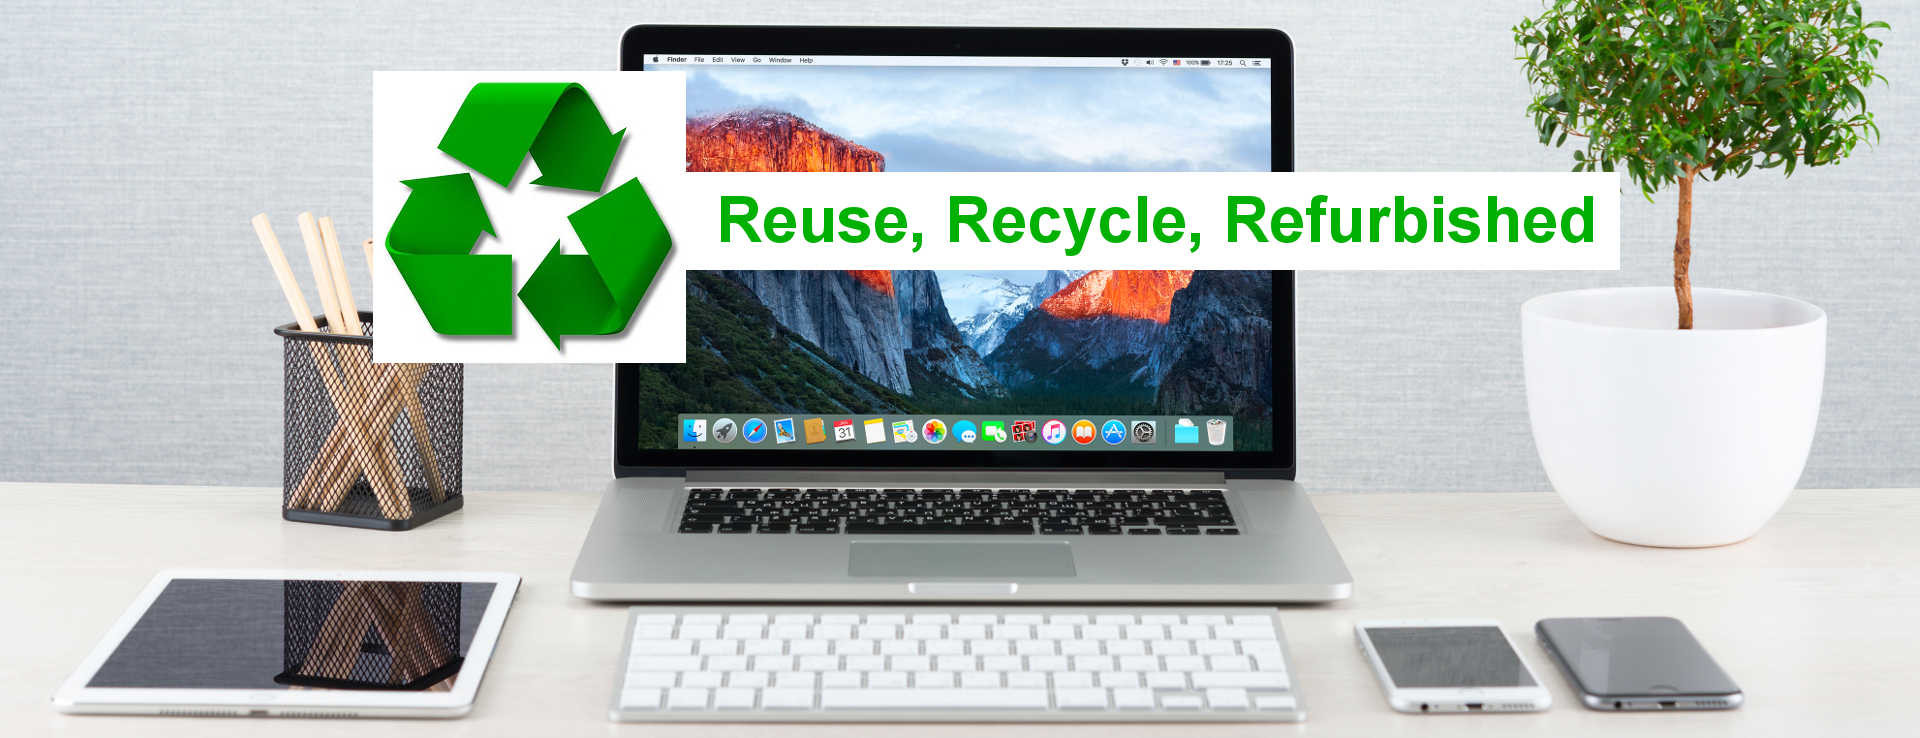 Five Reasons to Go Green with GainSaver Refurbished Macs